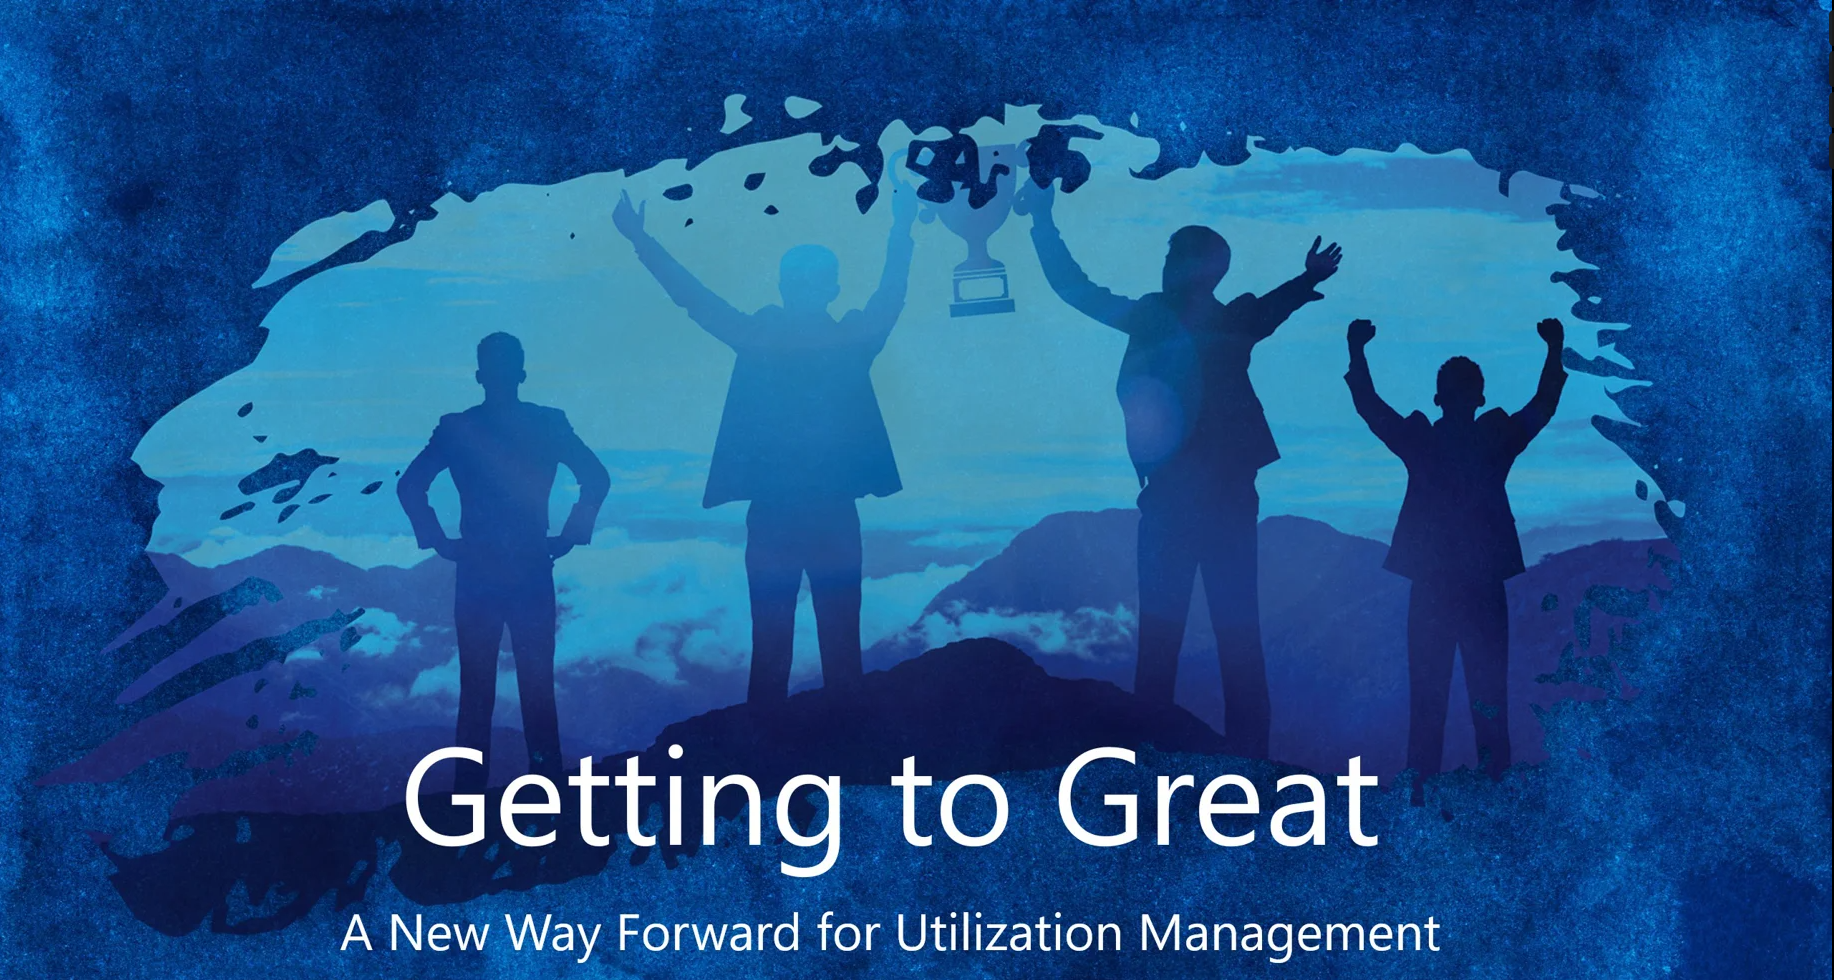 Getting from Yes to Great: PuttingXSOLISinto Action